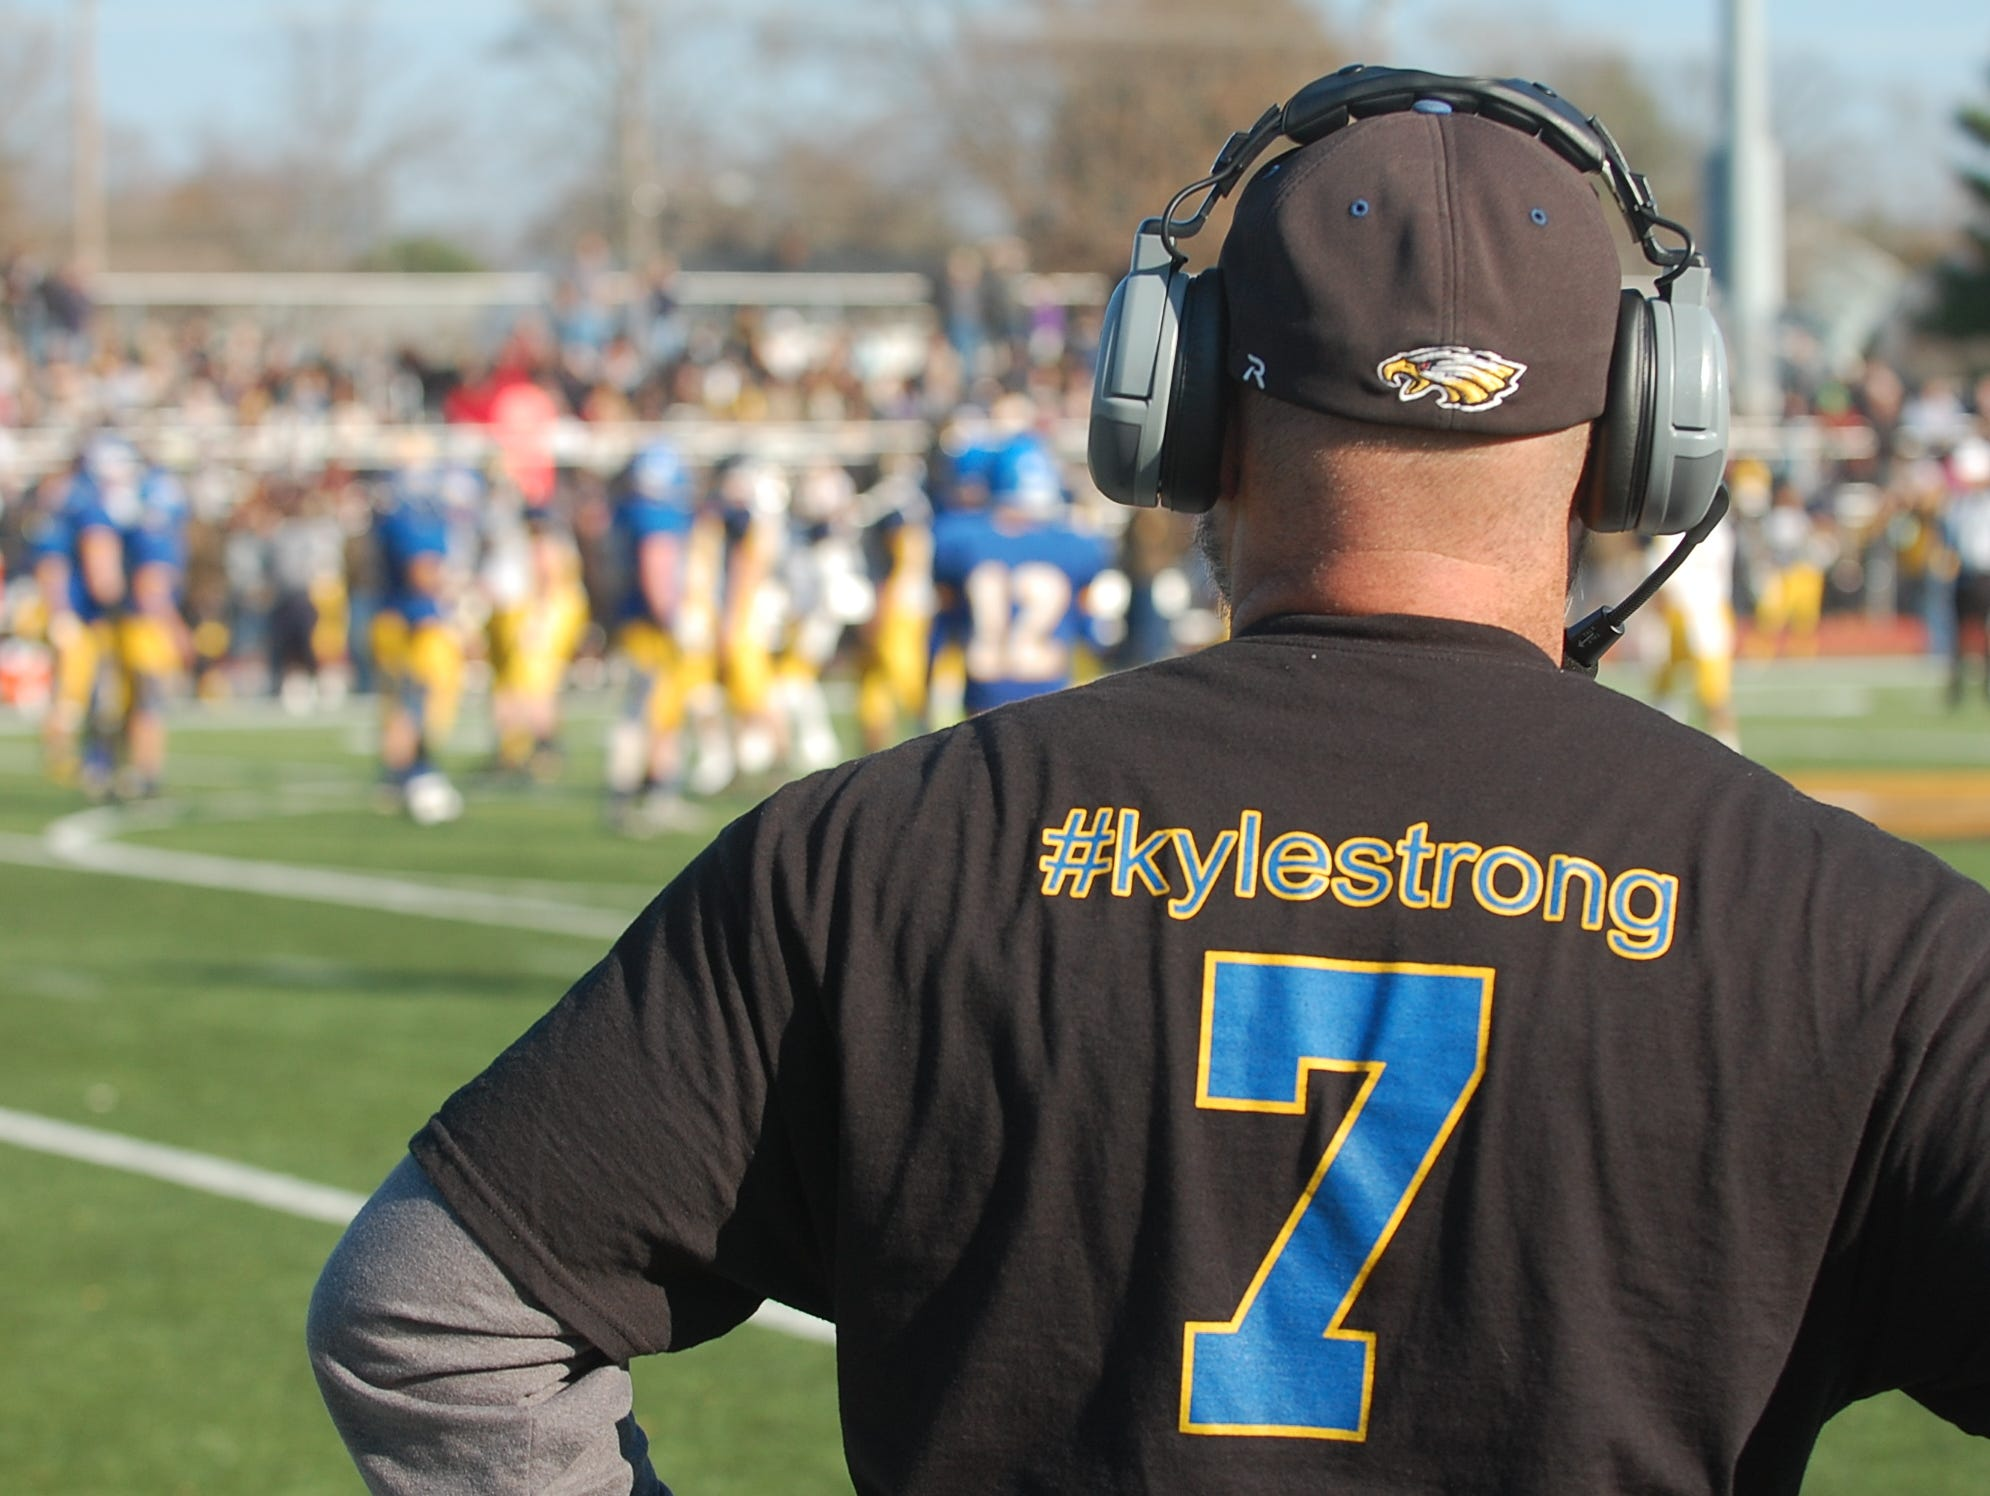 Pennsville coach Ryan Wood surveys the scene late in the fourth quarter Saturday.